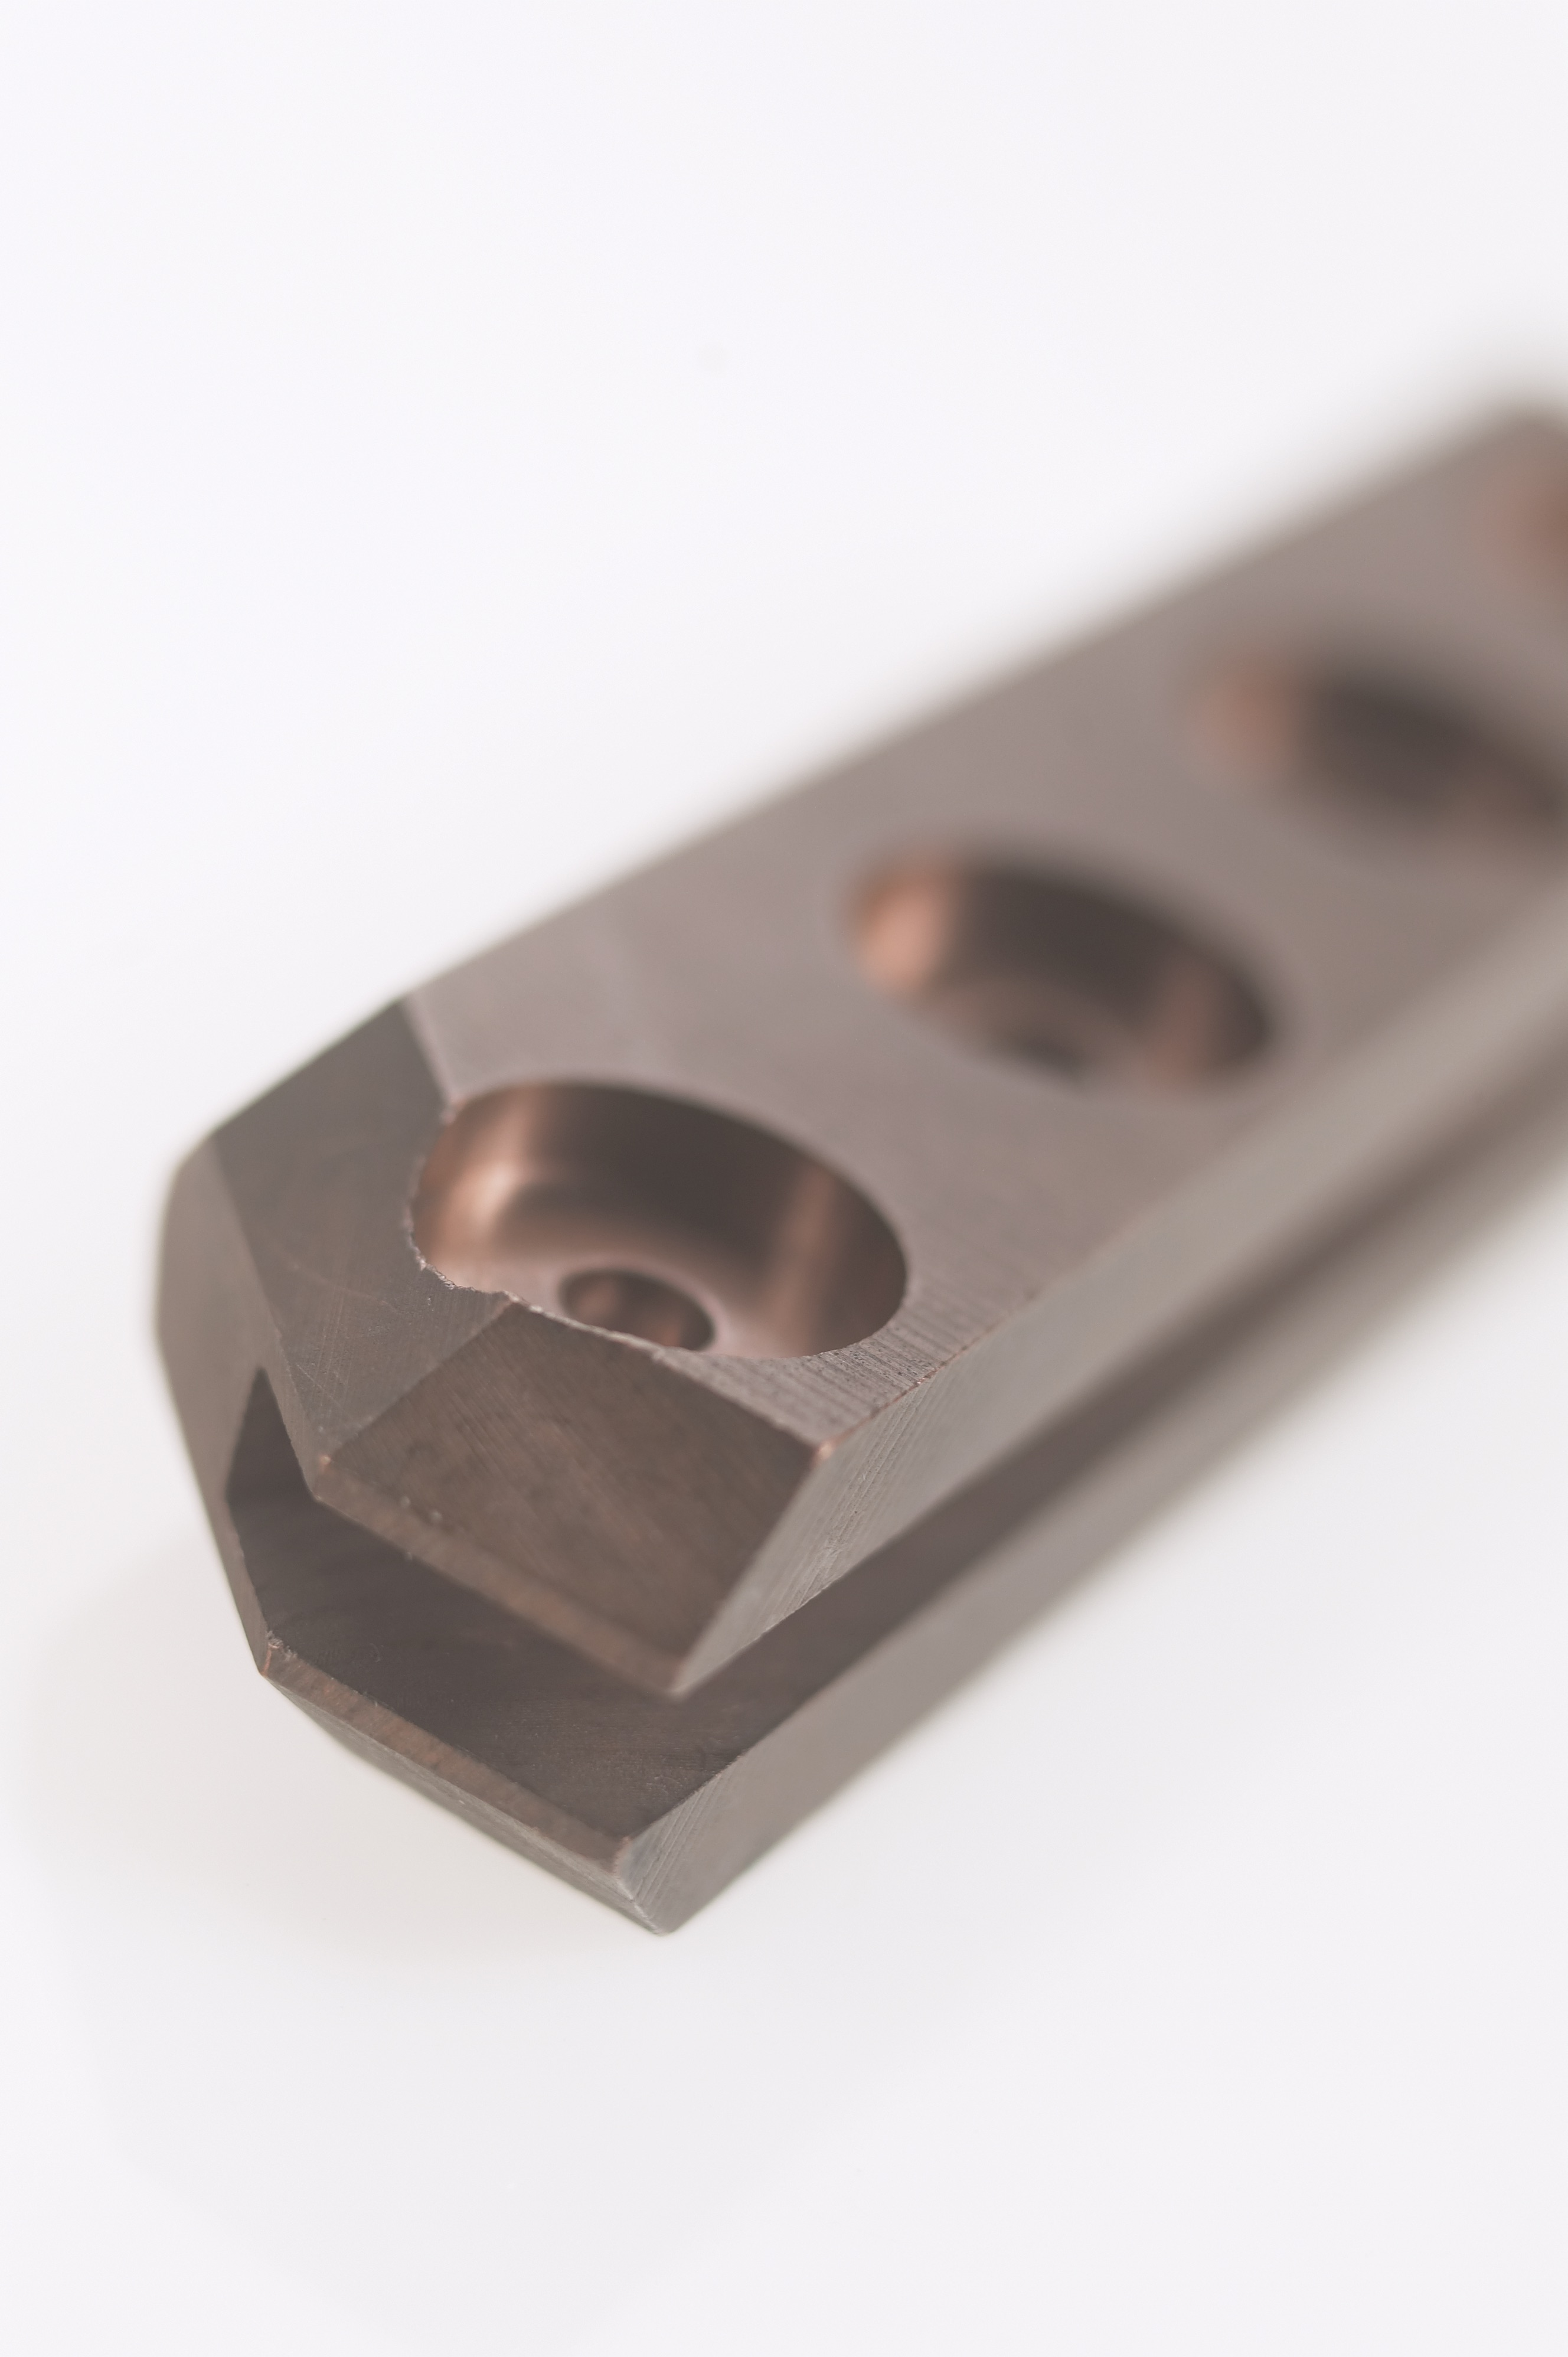 carbon contact manufactured by anglo carbon